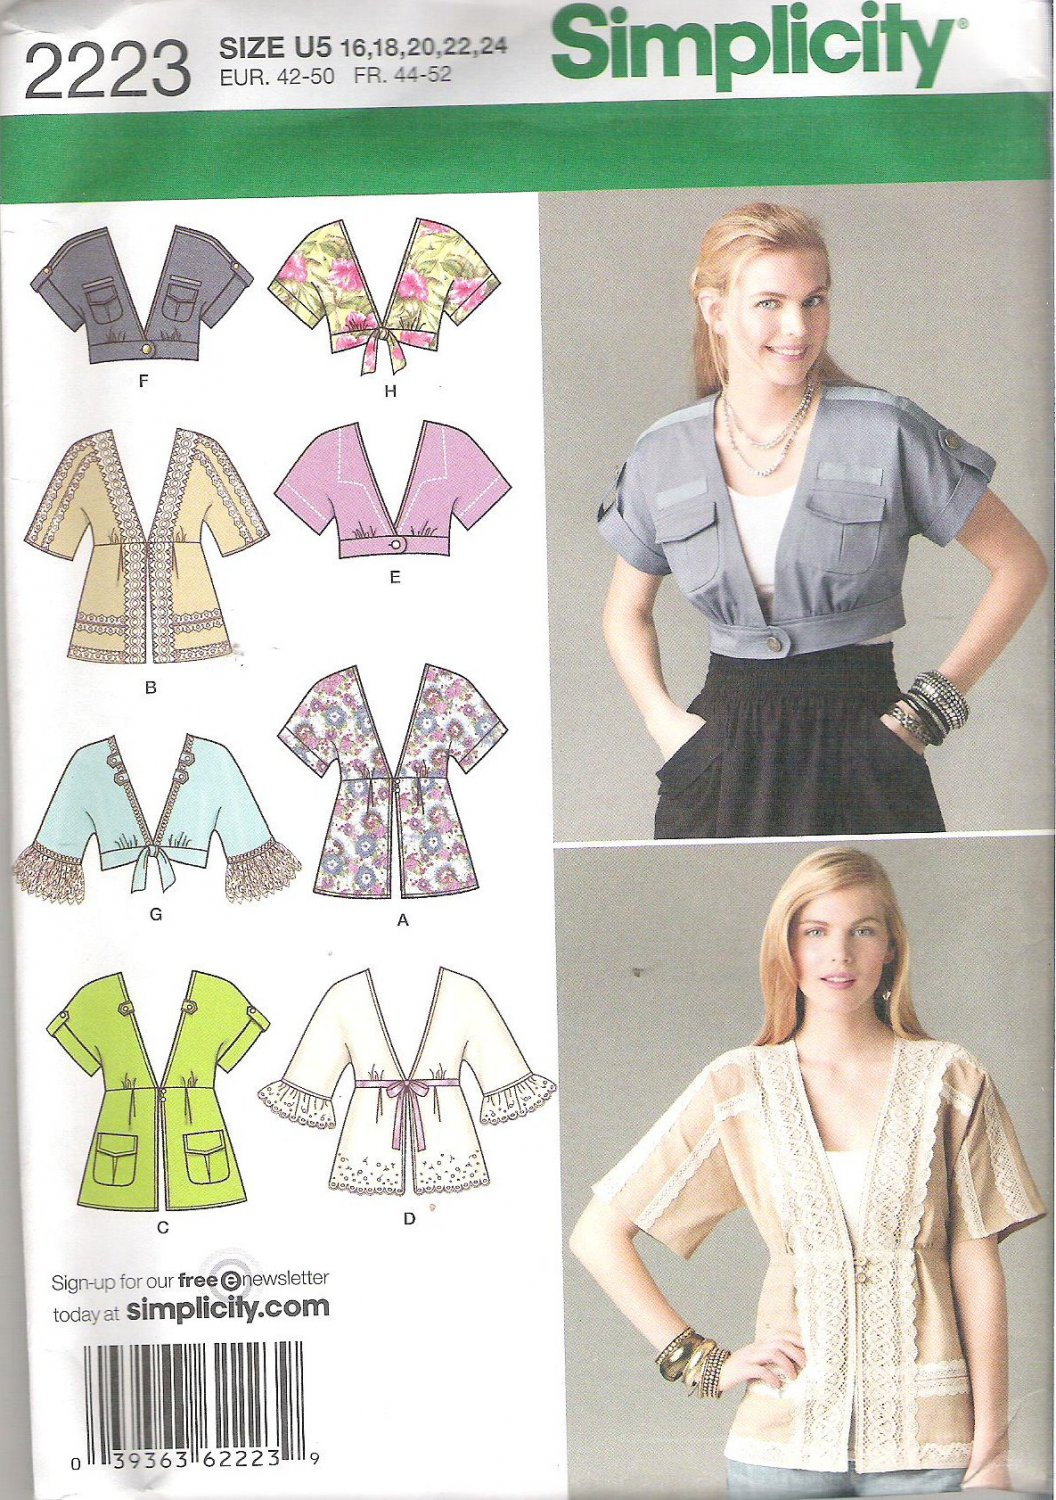 2011 Simplicity 2223 Pattern Jacket in Two Lengths with Trim Variations Size 16-24 Uncut